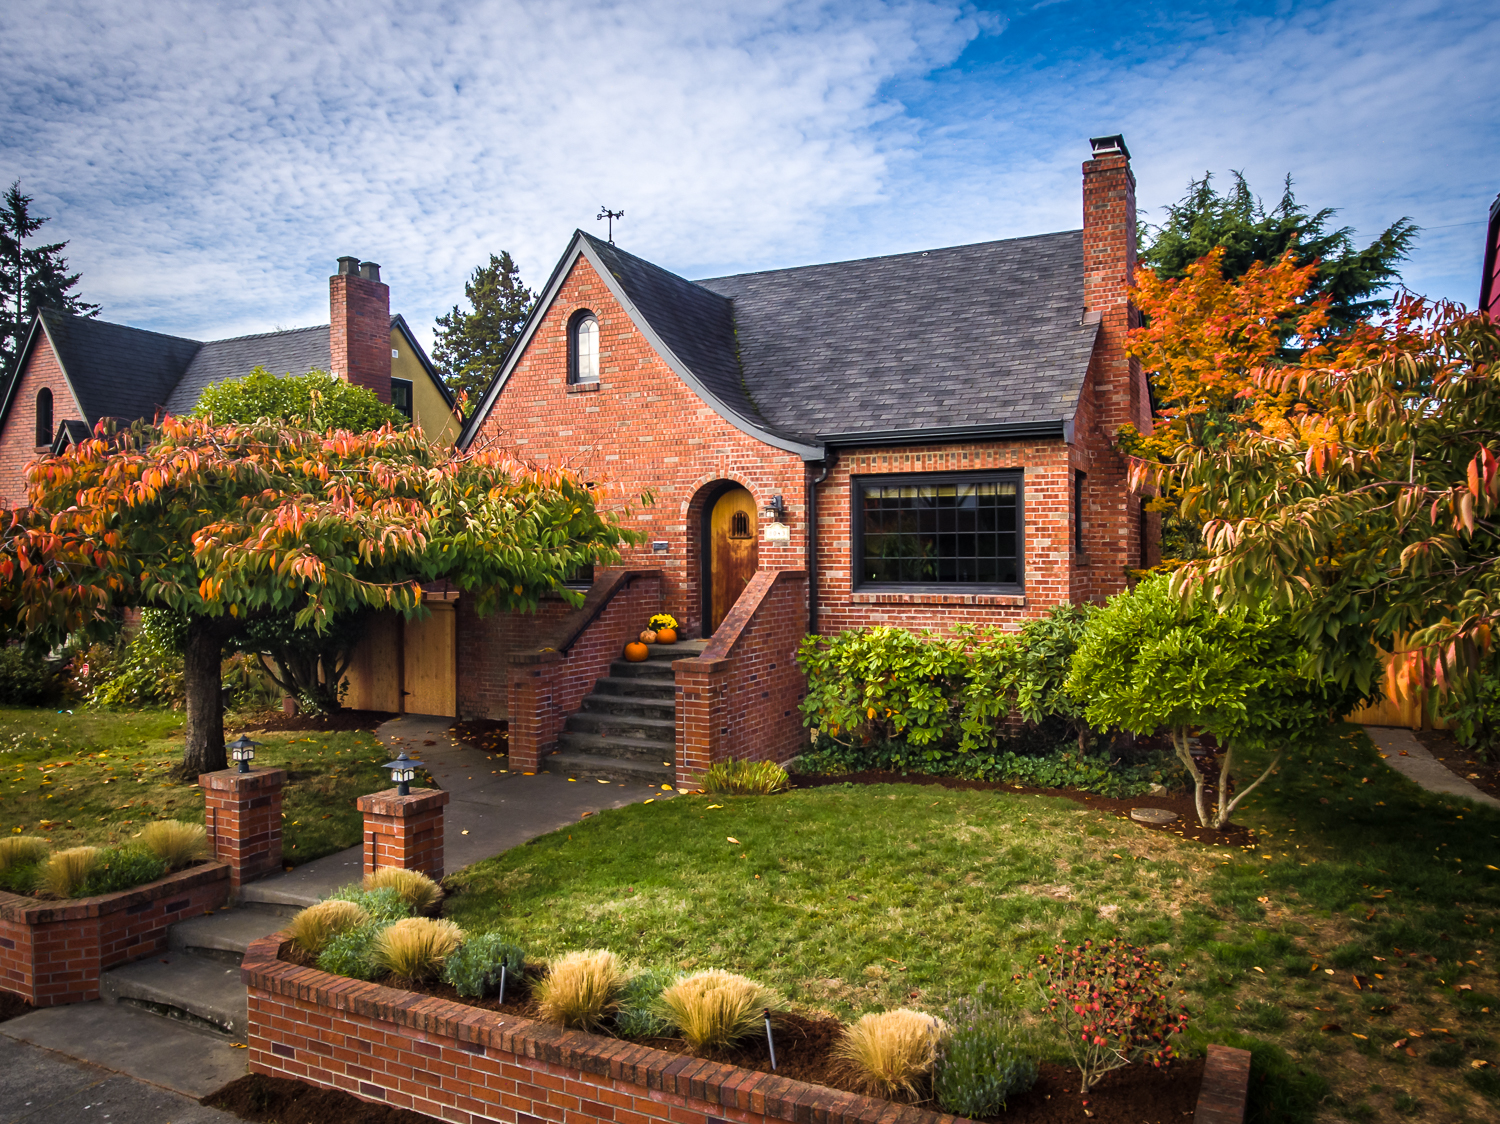 Drone photo of brick house exterior with blue sky in Autumn